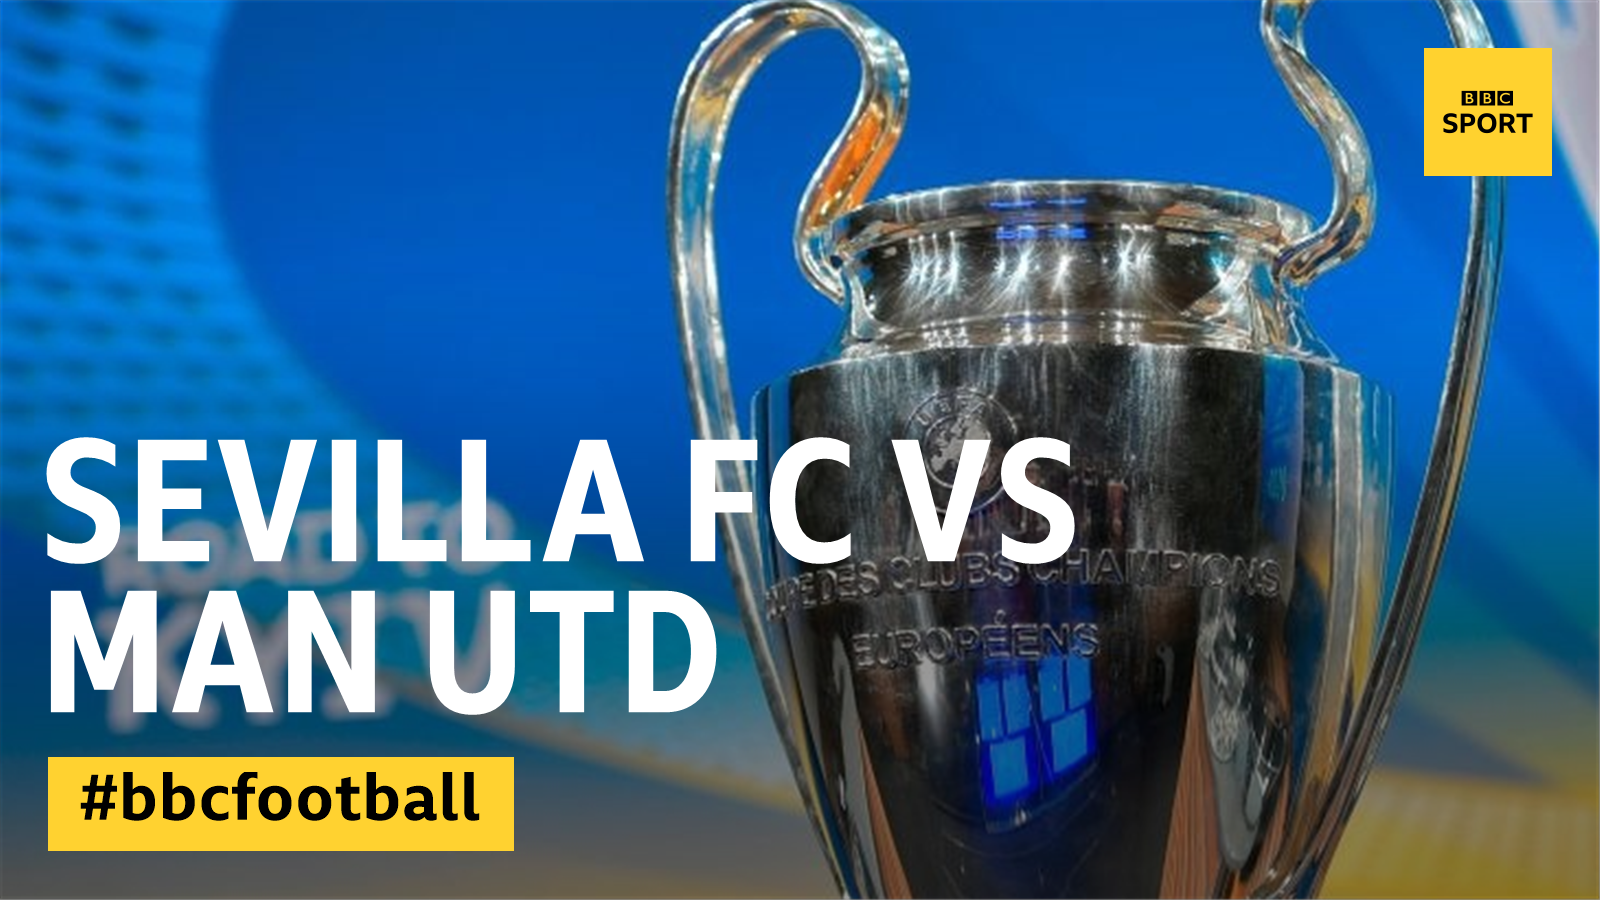 Sevilla FC v Man Utd �� https://t.co/5U77L86HKl #UCLDraw https://t.co/cCafnFWV9D